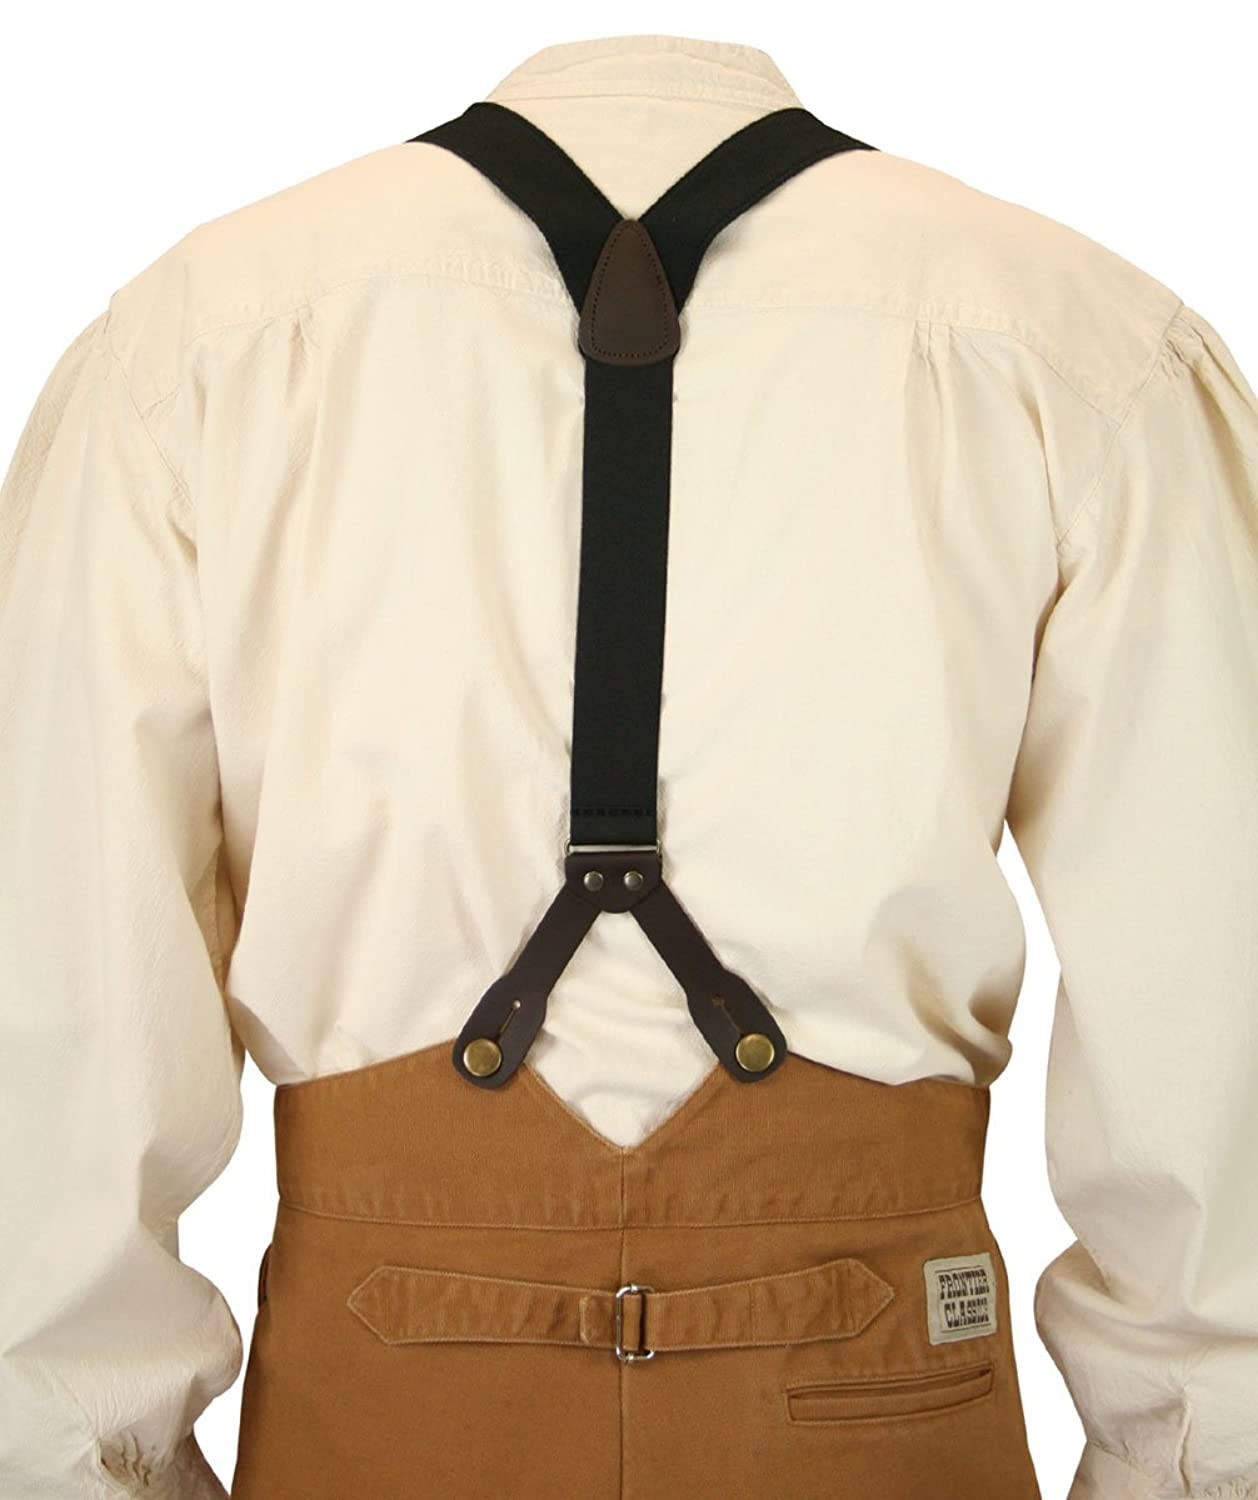 Edwardian Men's Fashion & Clothing Historical Emporium Mens Canvas Stagecoach Y-Back Suspenders $27.95 AT vintagedancer.com